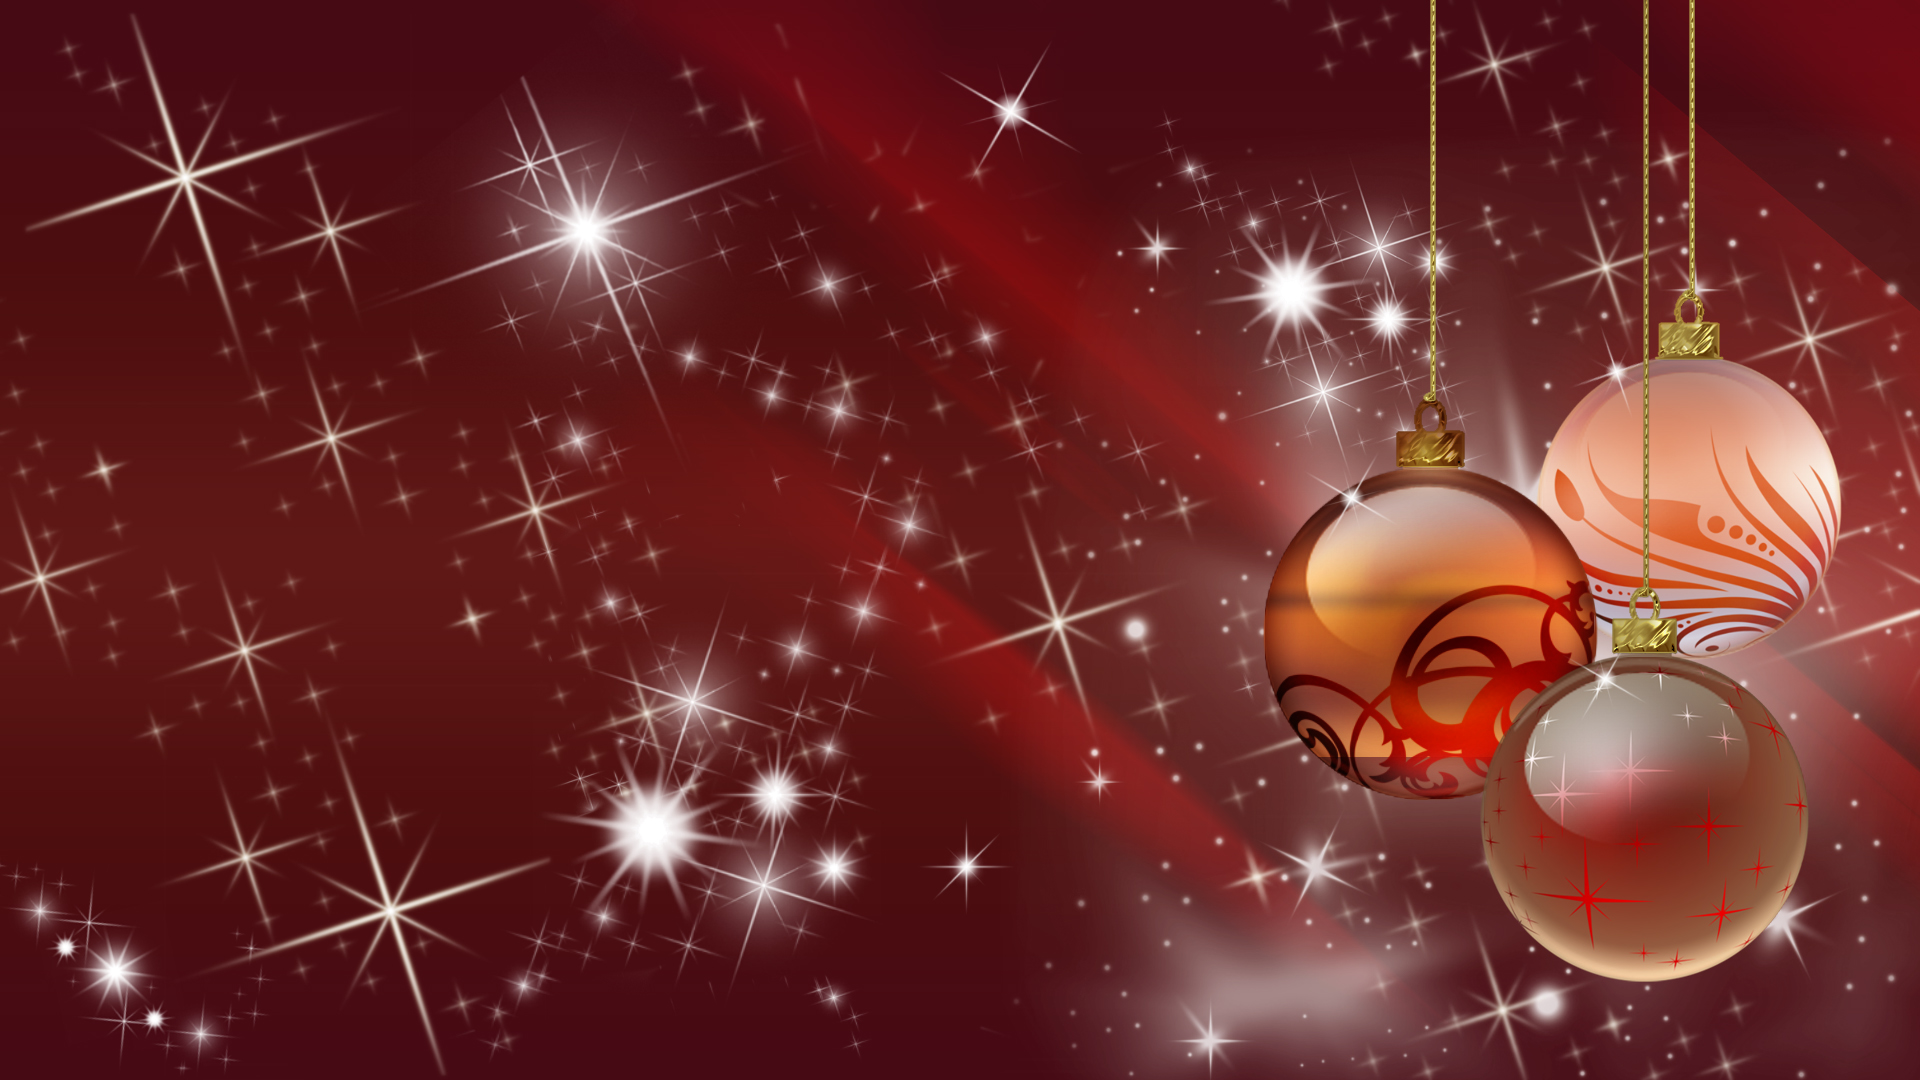 wallpaper christmas background web 1920x1080 1920x1080